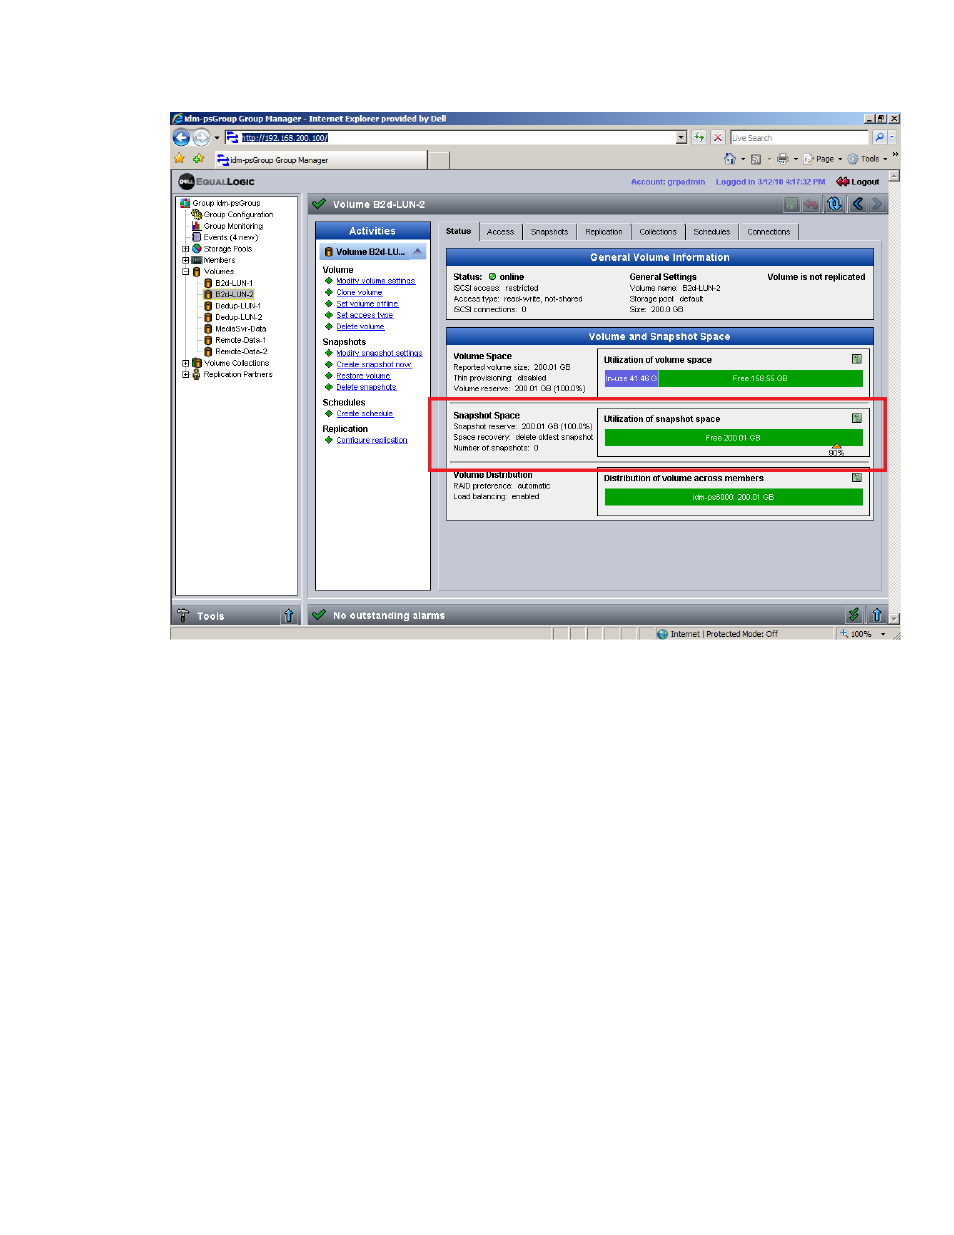 conclusions dell equallogic ps6000 user manual page 10 10 rh manualsdir com Dell Support End of List PS6000 Manual